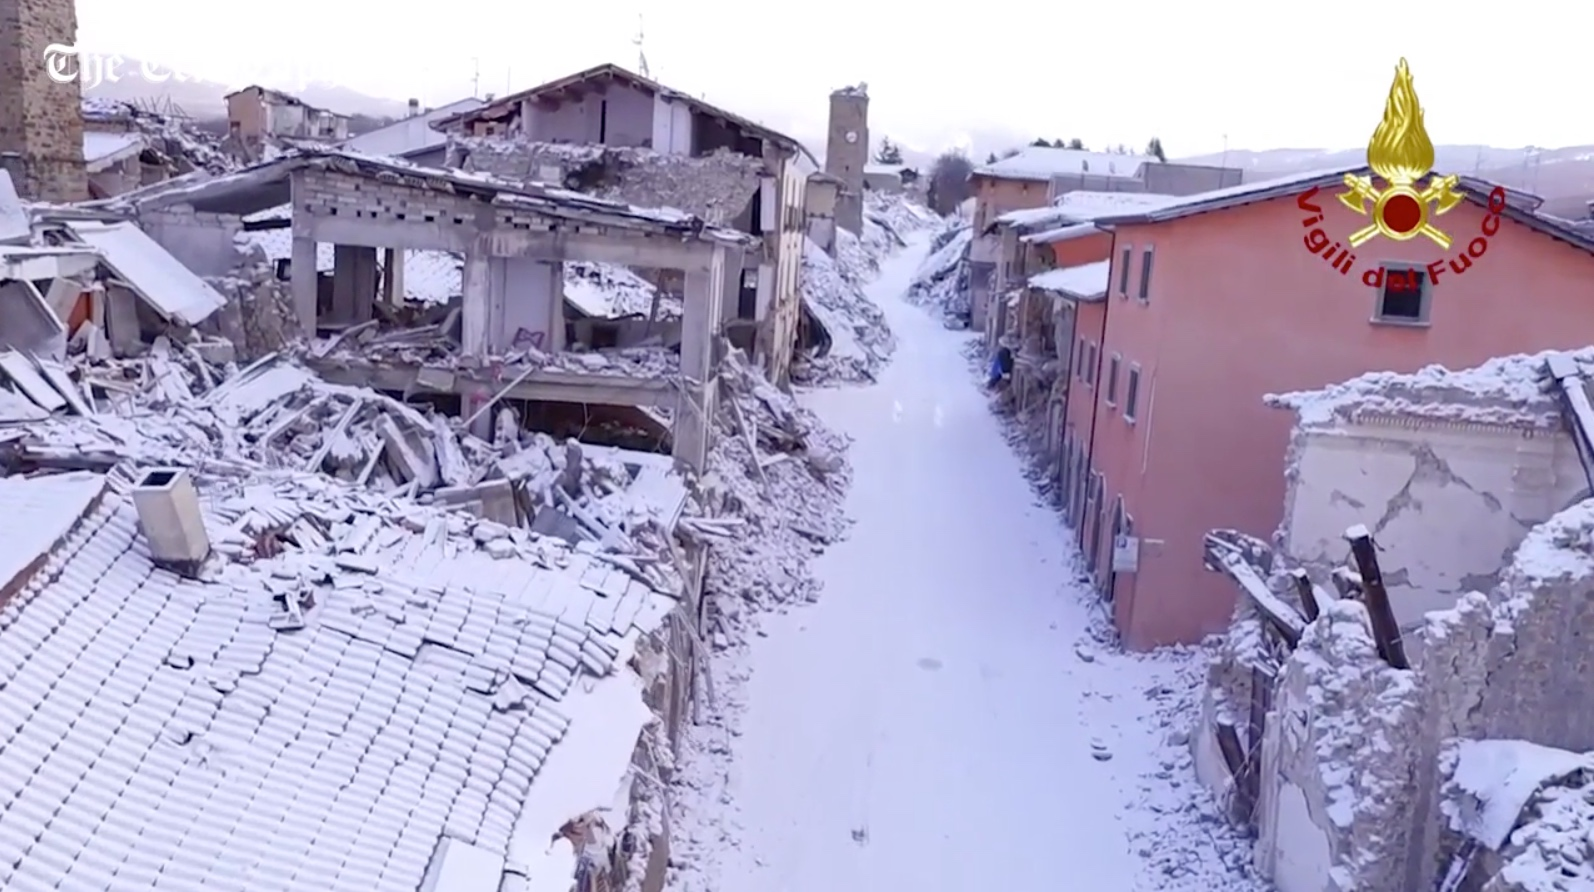 amatrice-italy-earthquake-damage